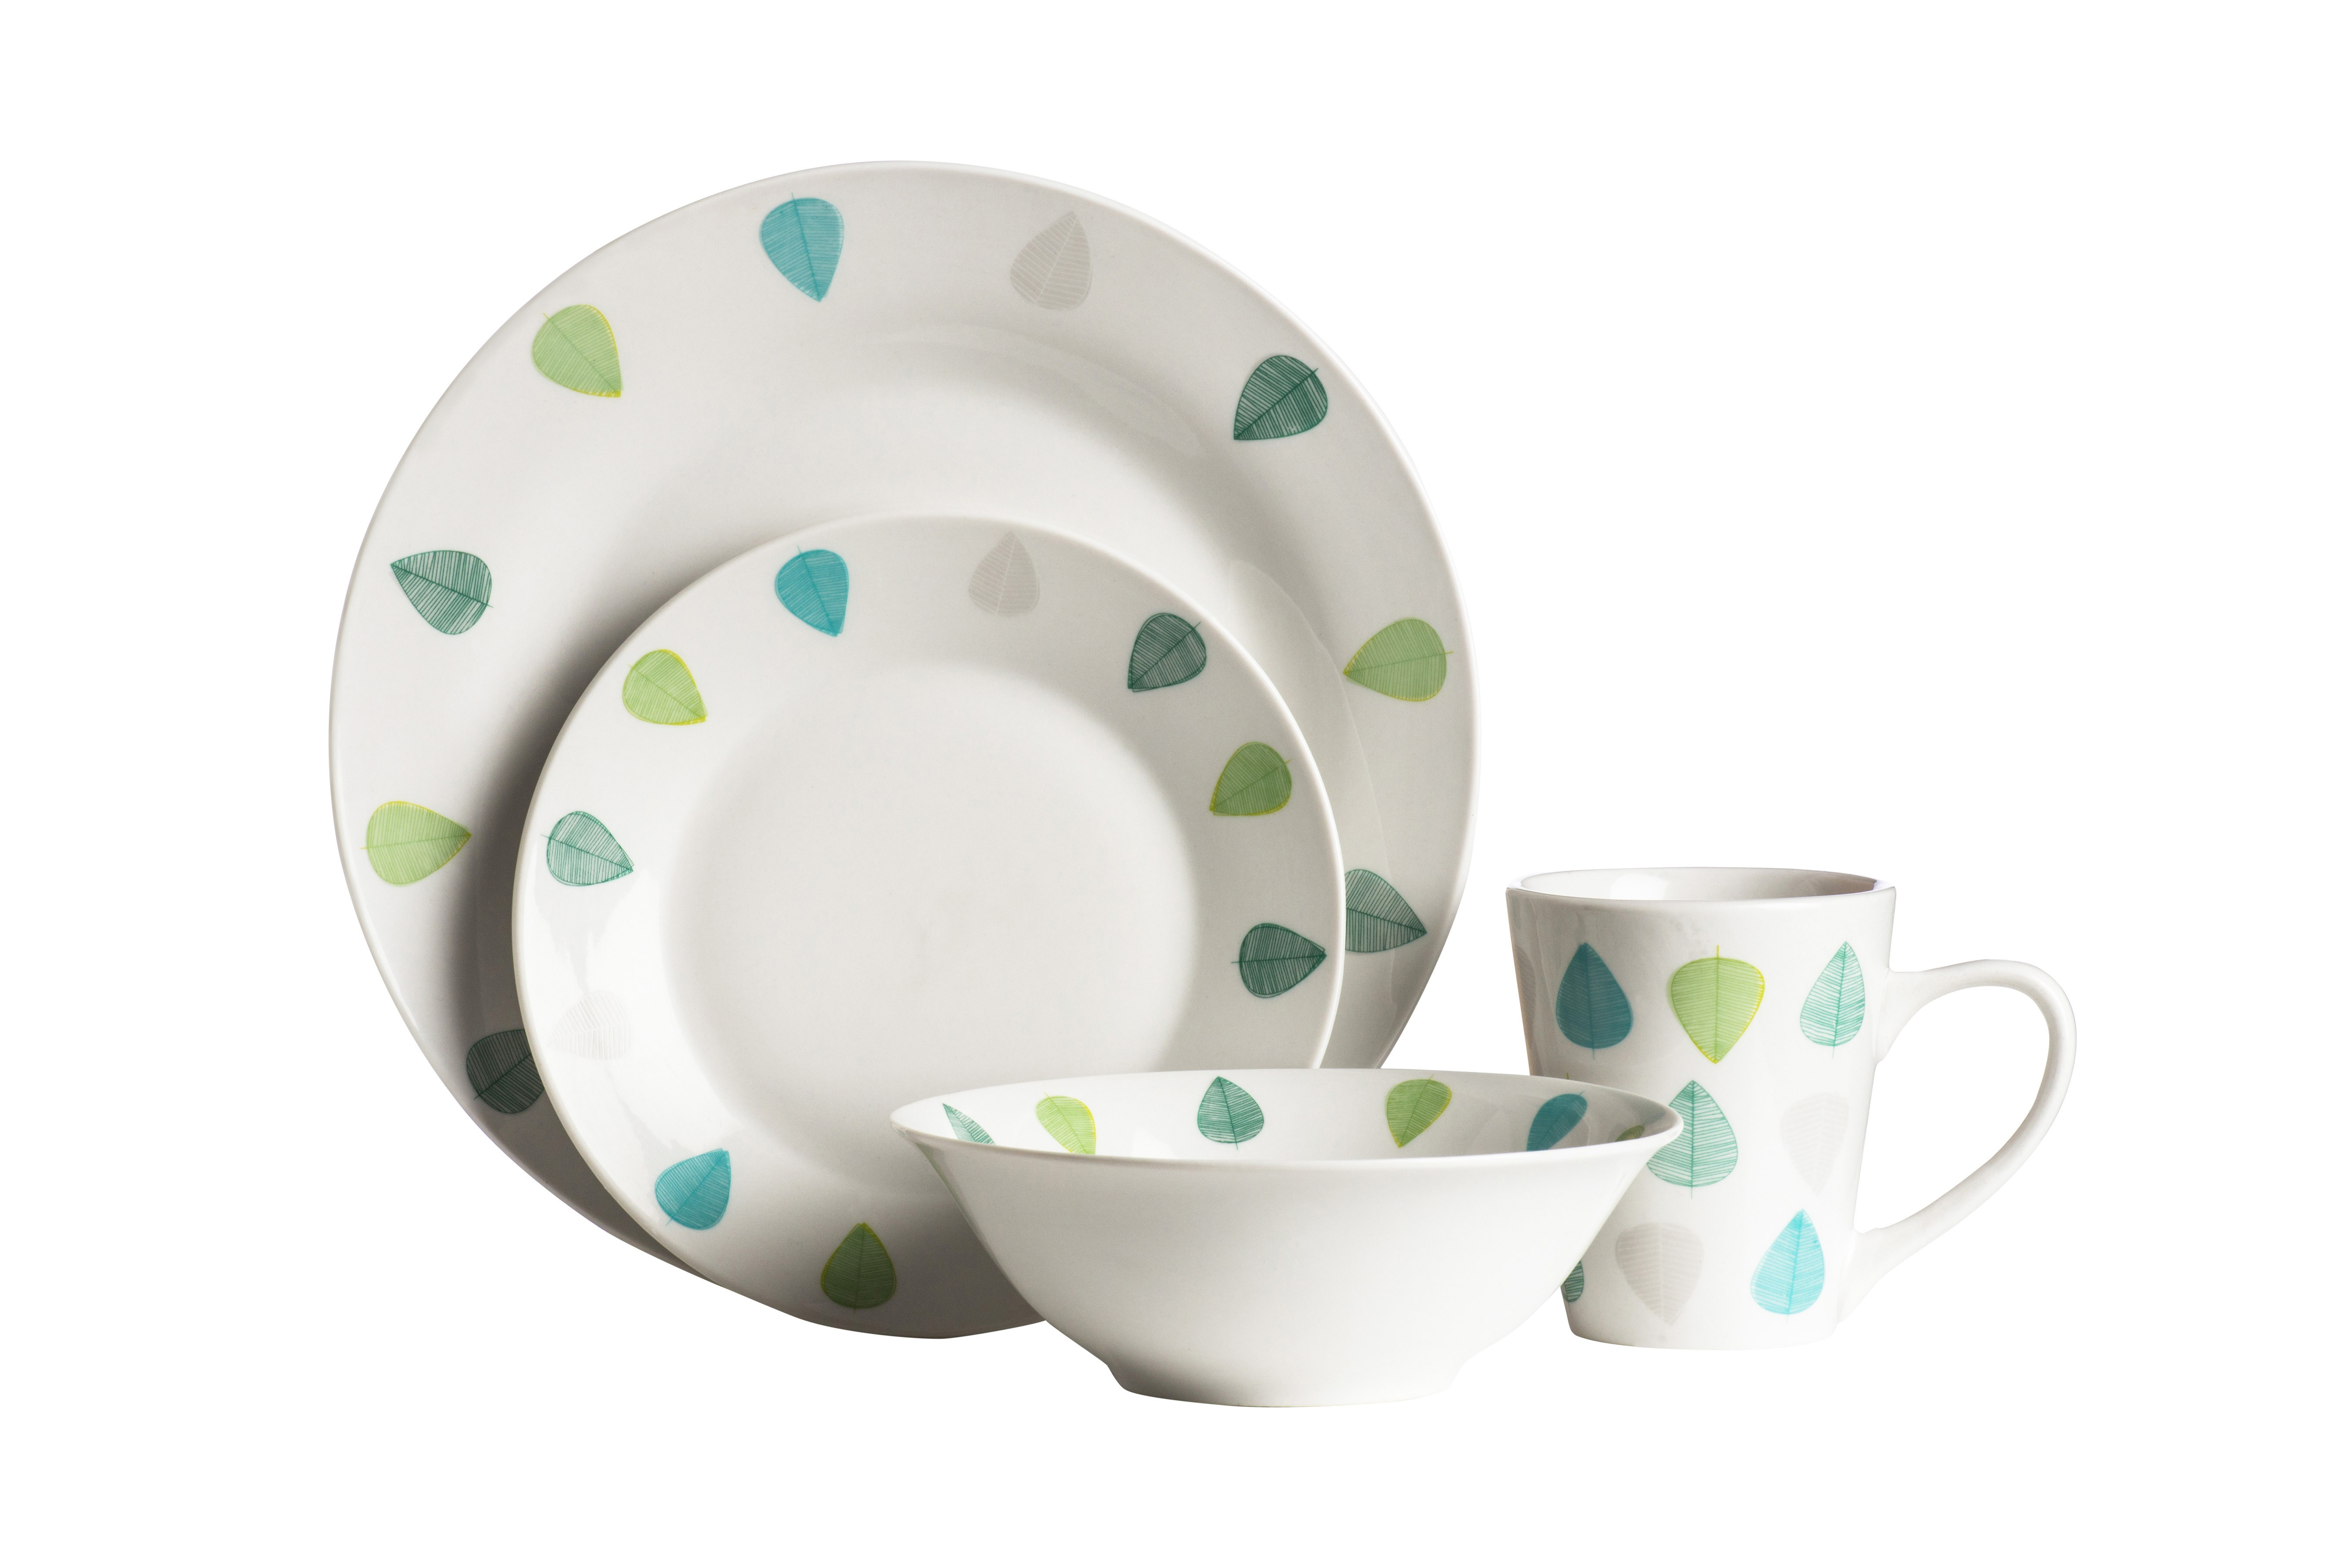 16 Piece Green Leaves Porcelain Dinner Set